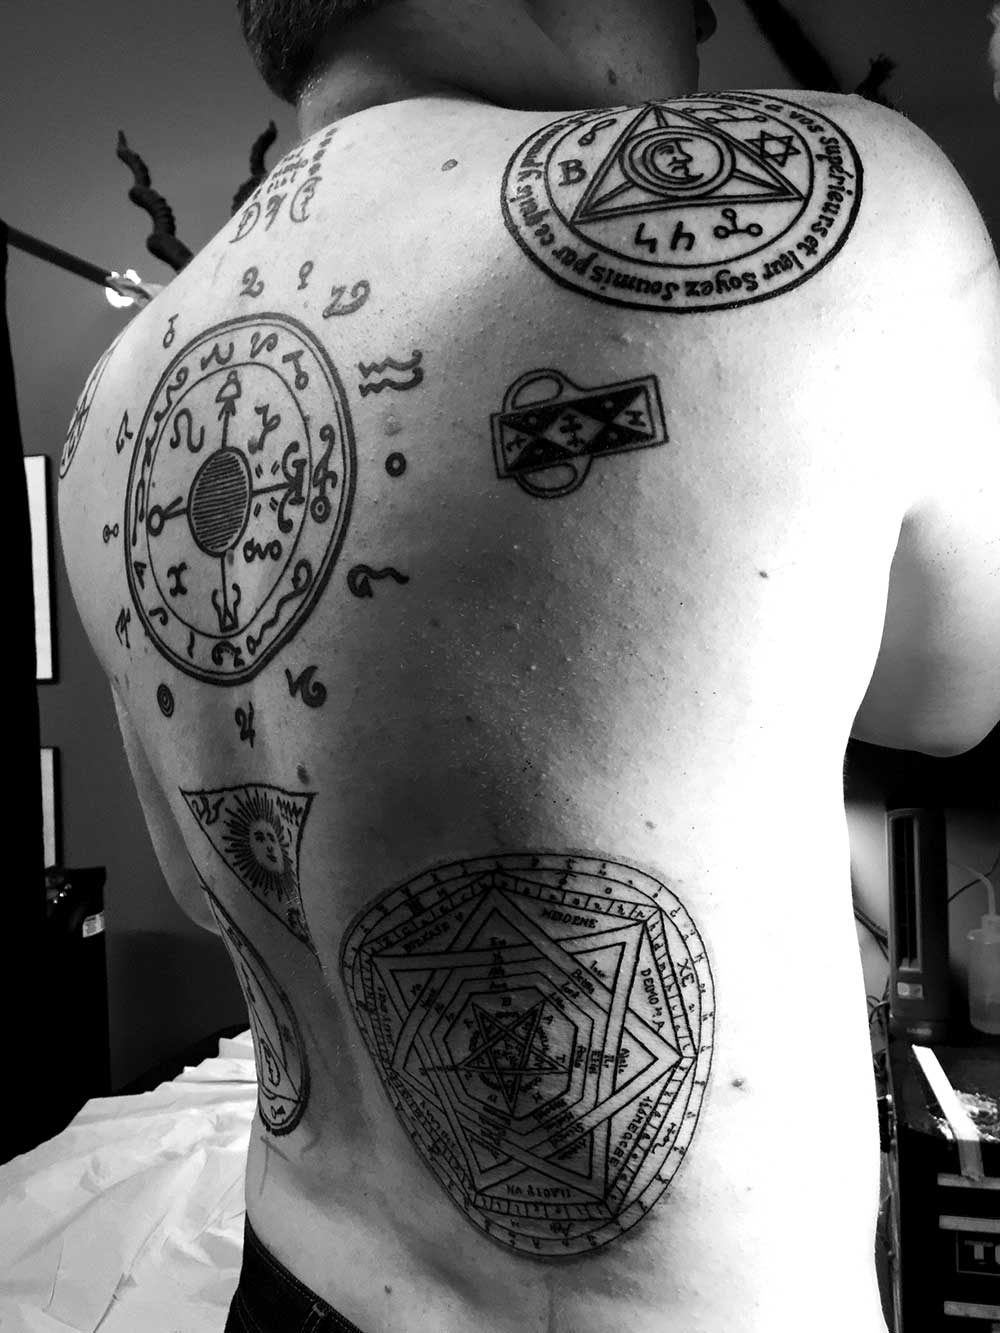 This Guy Got the Most Intense Chaos Magick Tattoos Ever